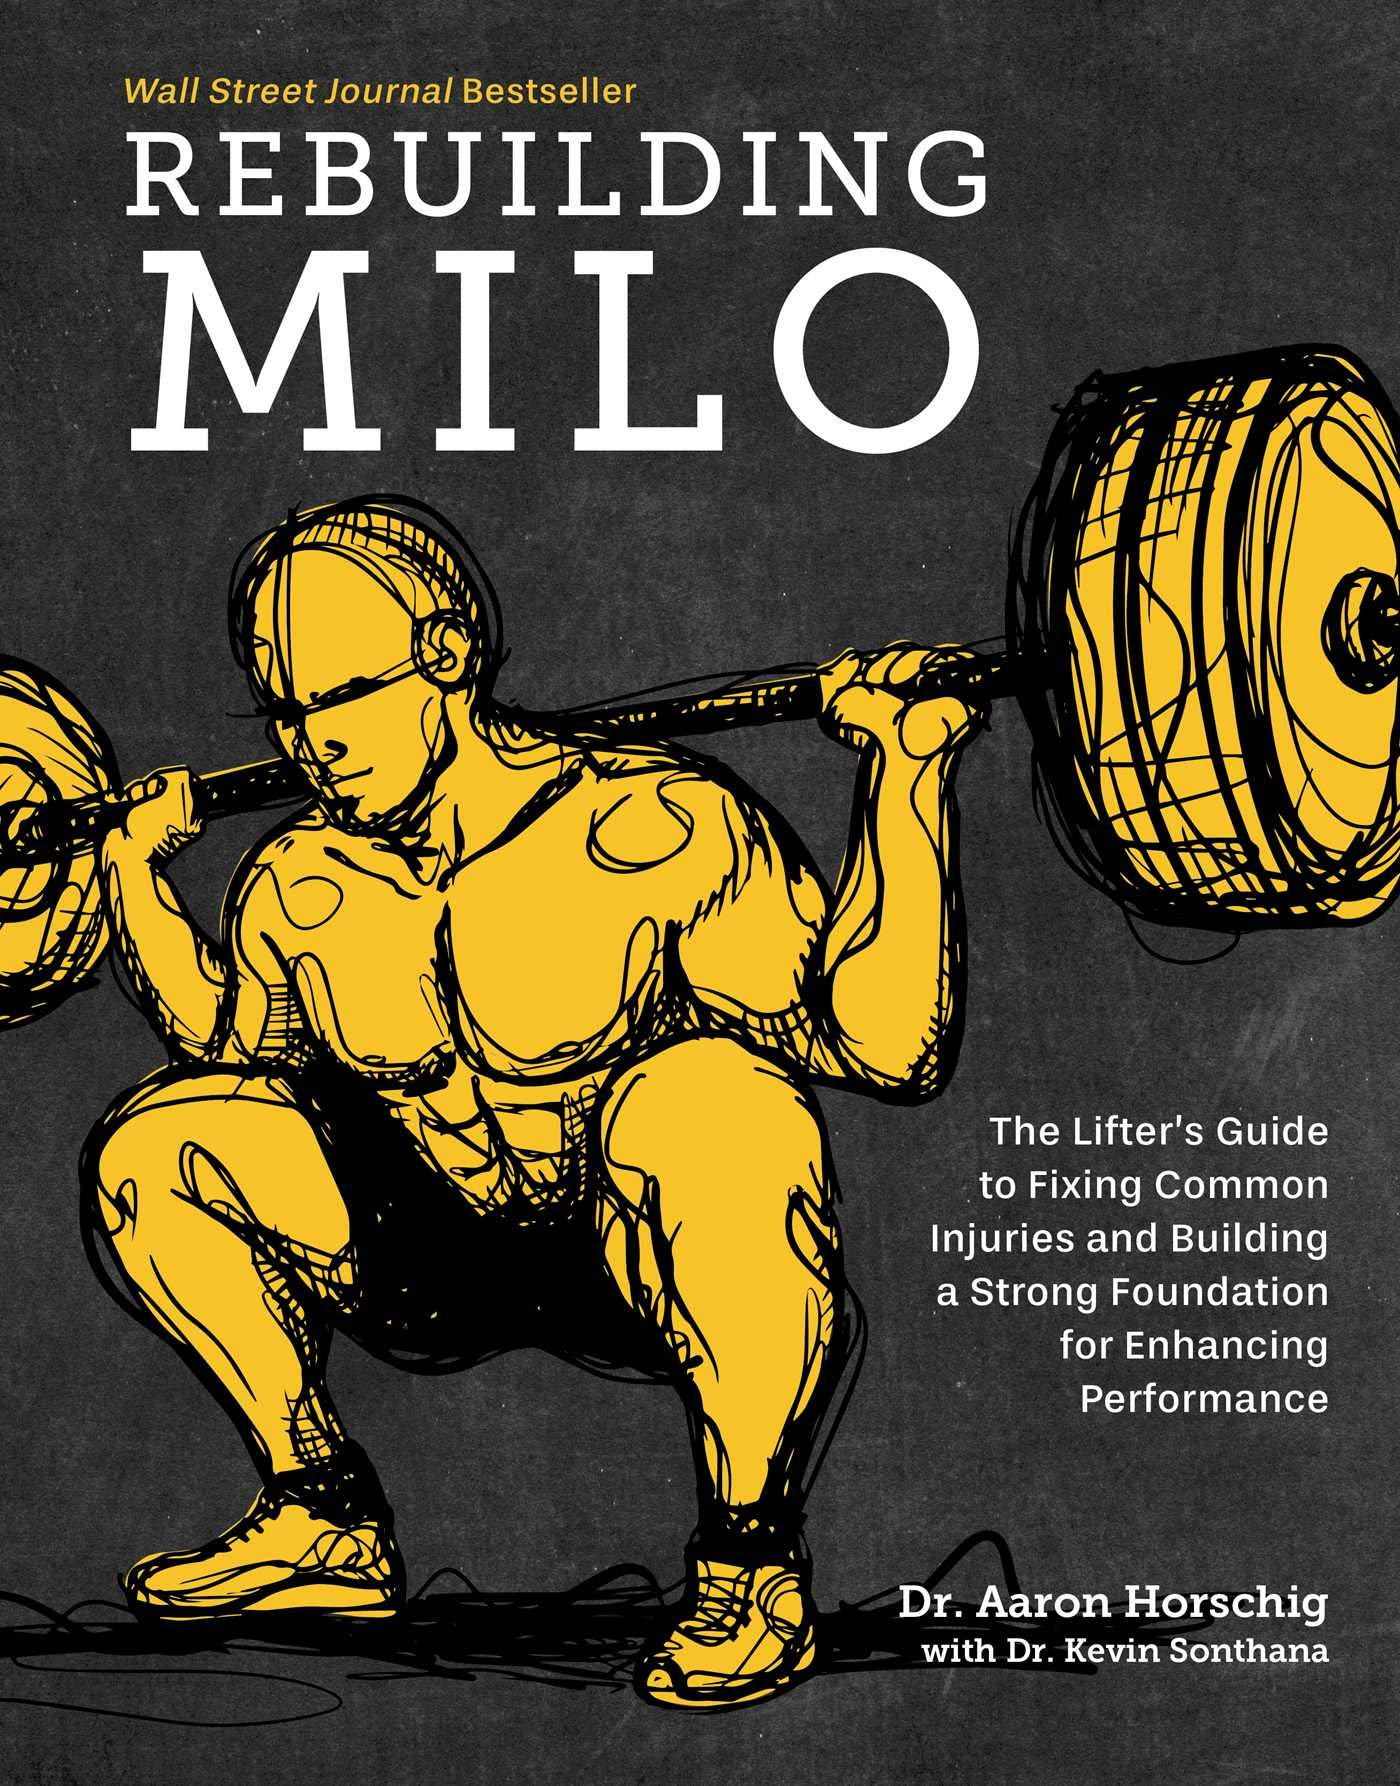 Rebuilding Milo: The Lifter's Guide to Fixing Common Injuries and Building a Strong Foundation for Enhancing Performance